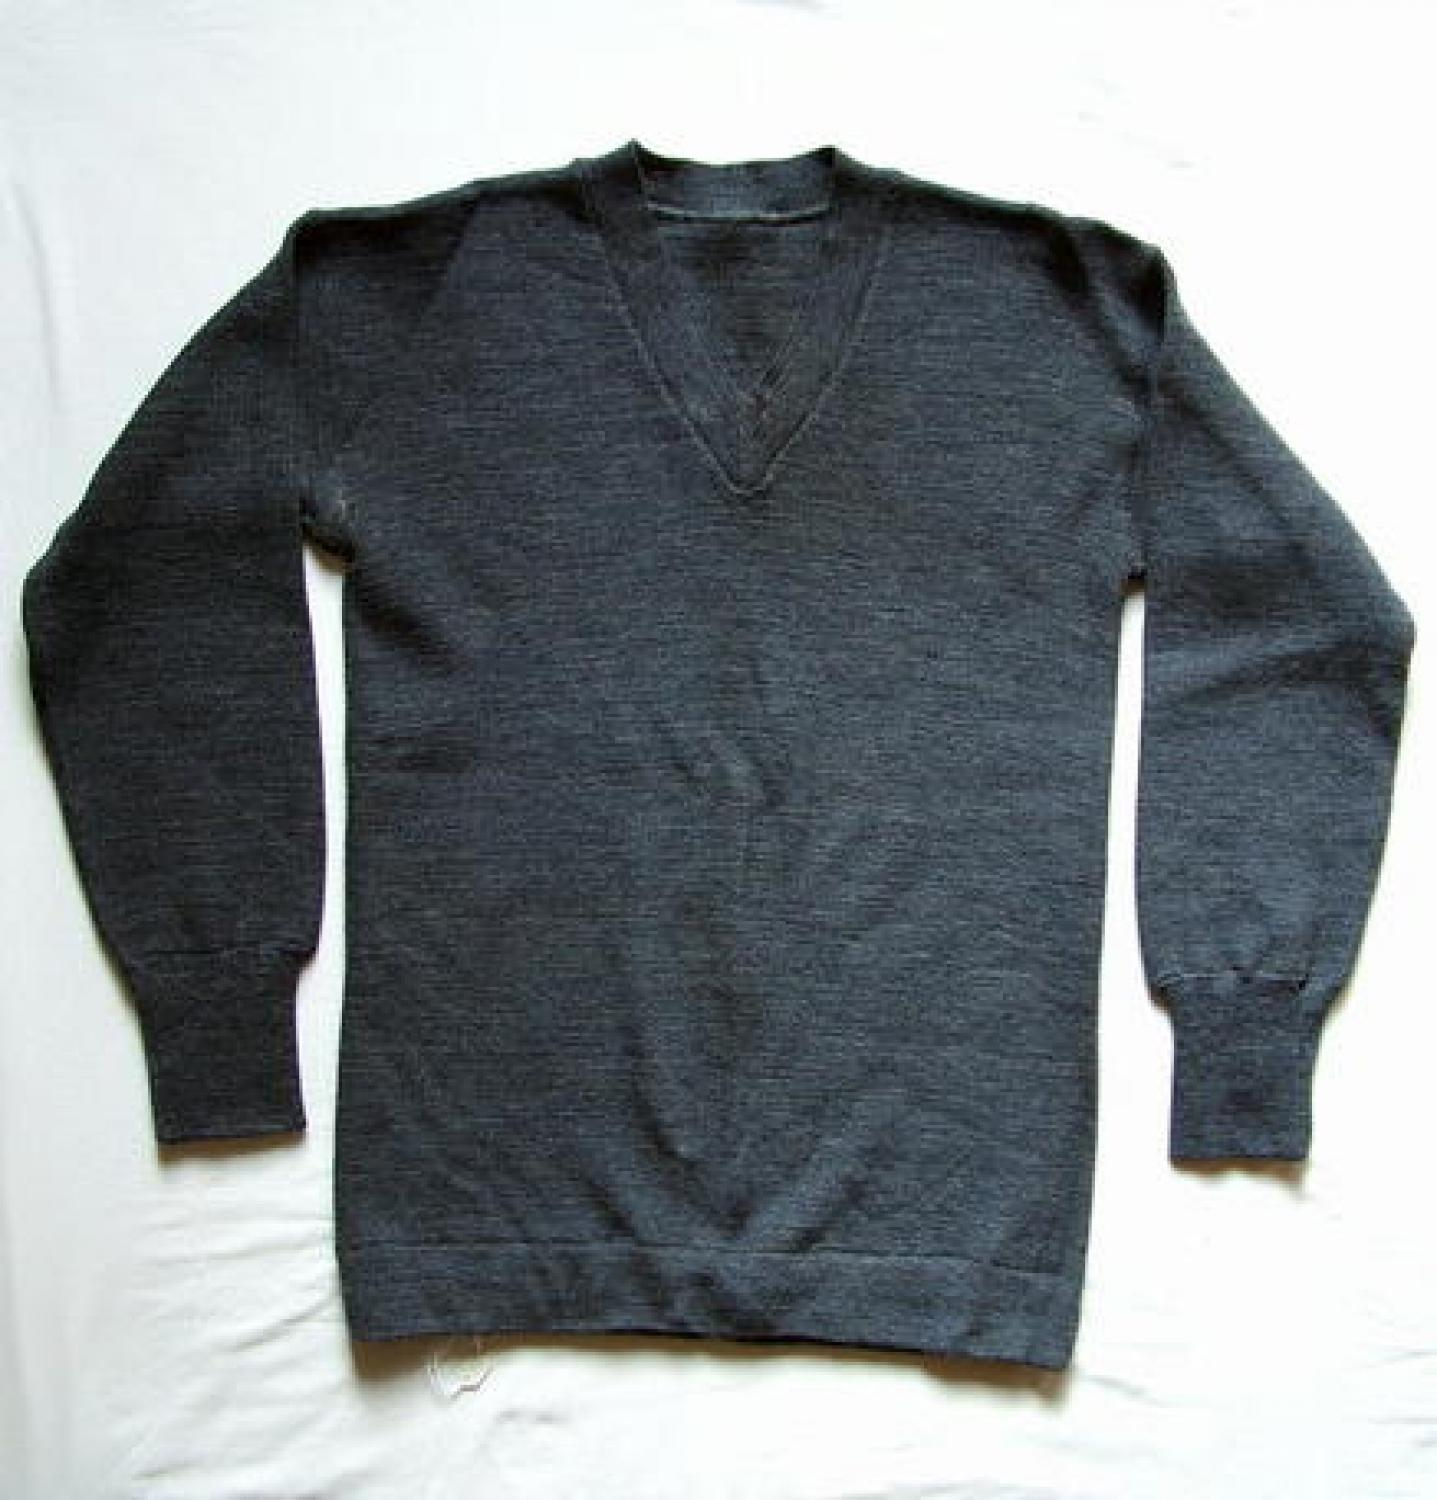 R.A.F. Aircrew Sweater